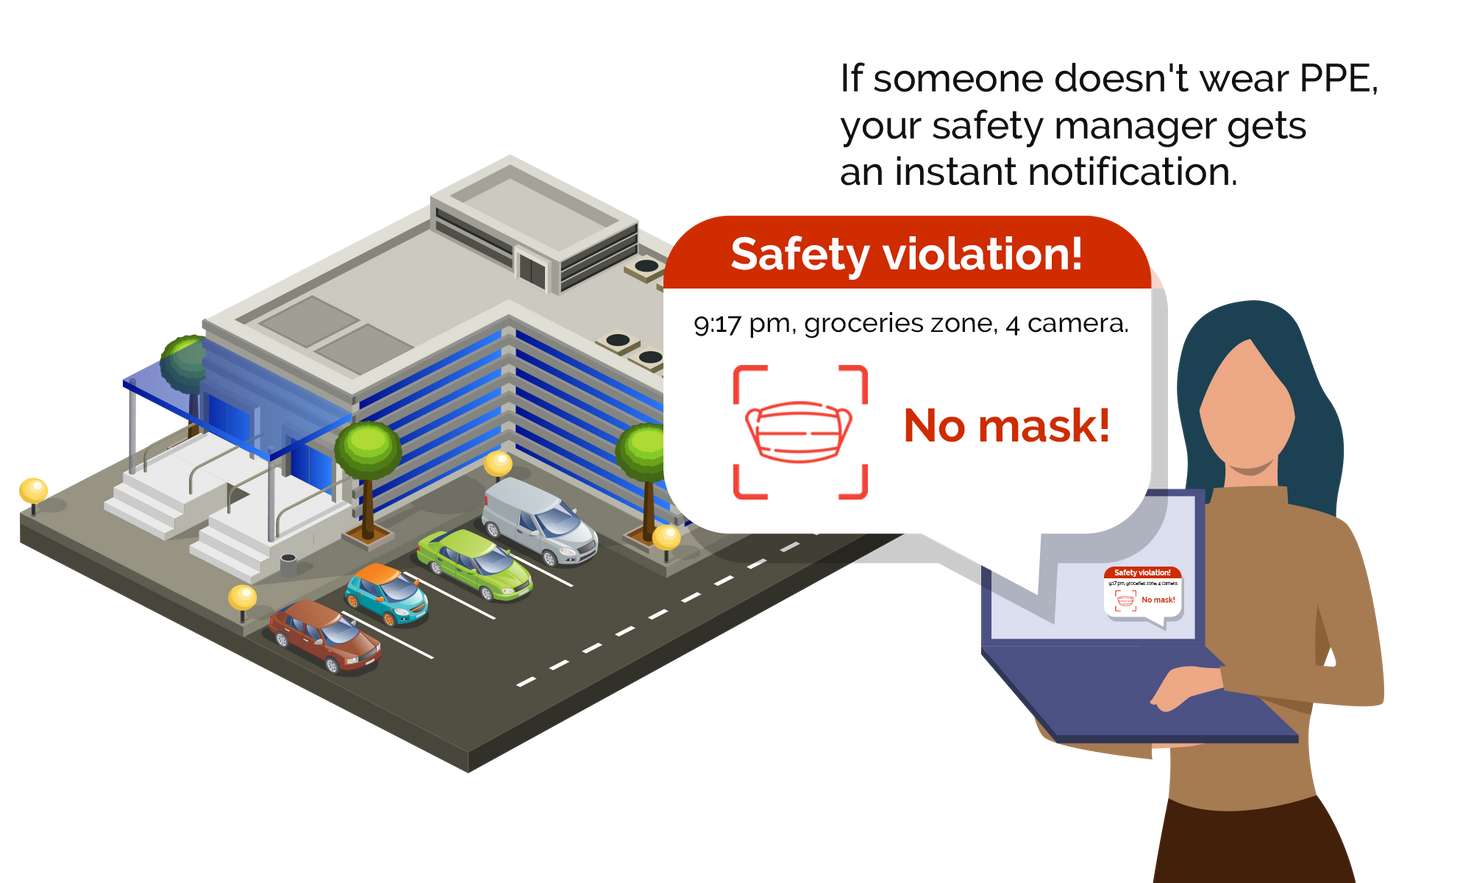 Smart PPE compliance assistance for the safety team for HoReCa, Retail and Hospitality